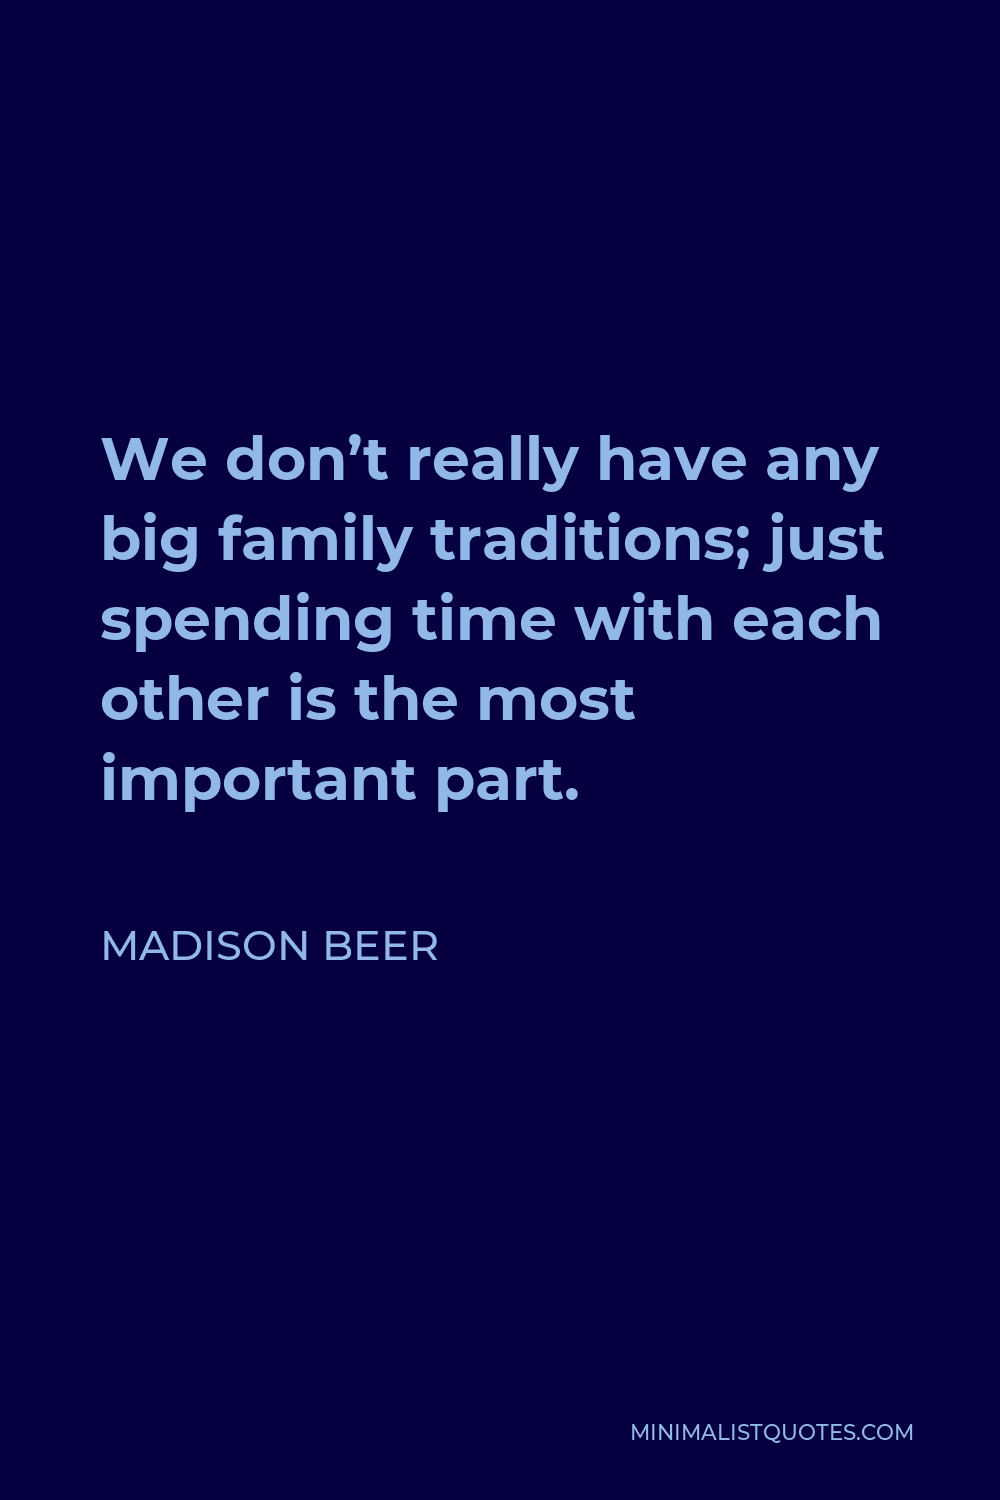 Madison Beer Quote - We don't really have any big family traditions; just spending time with each other is the most important part.